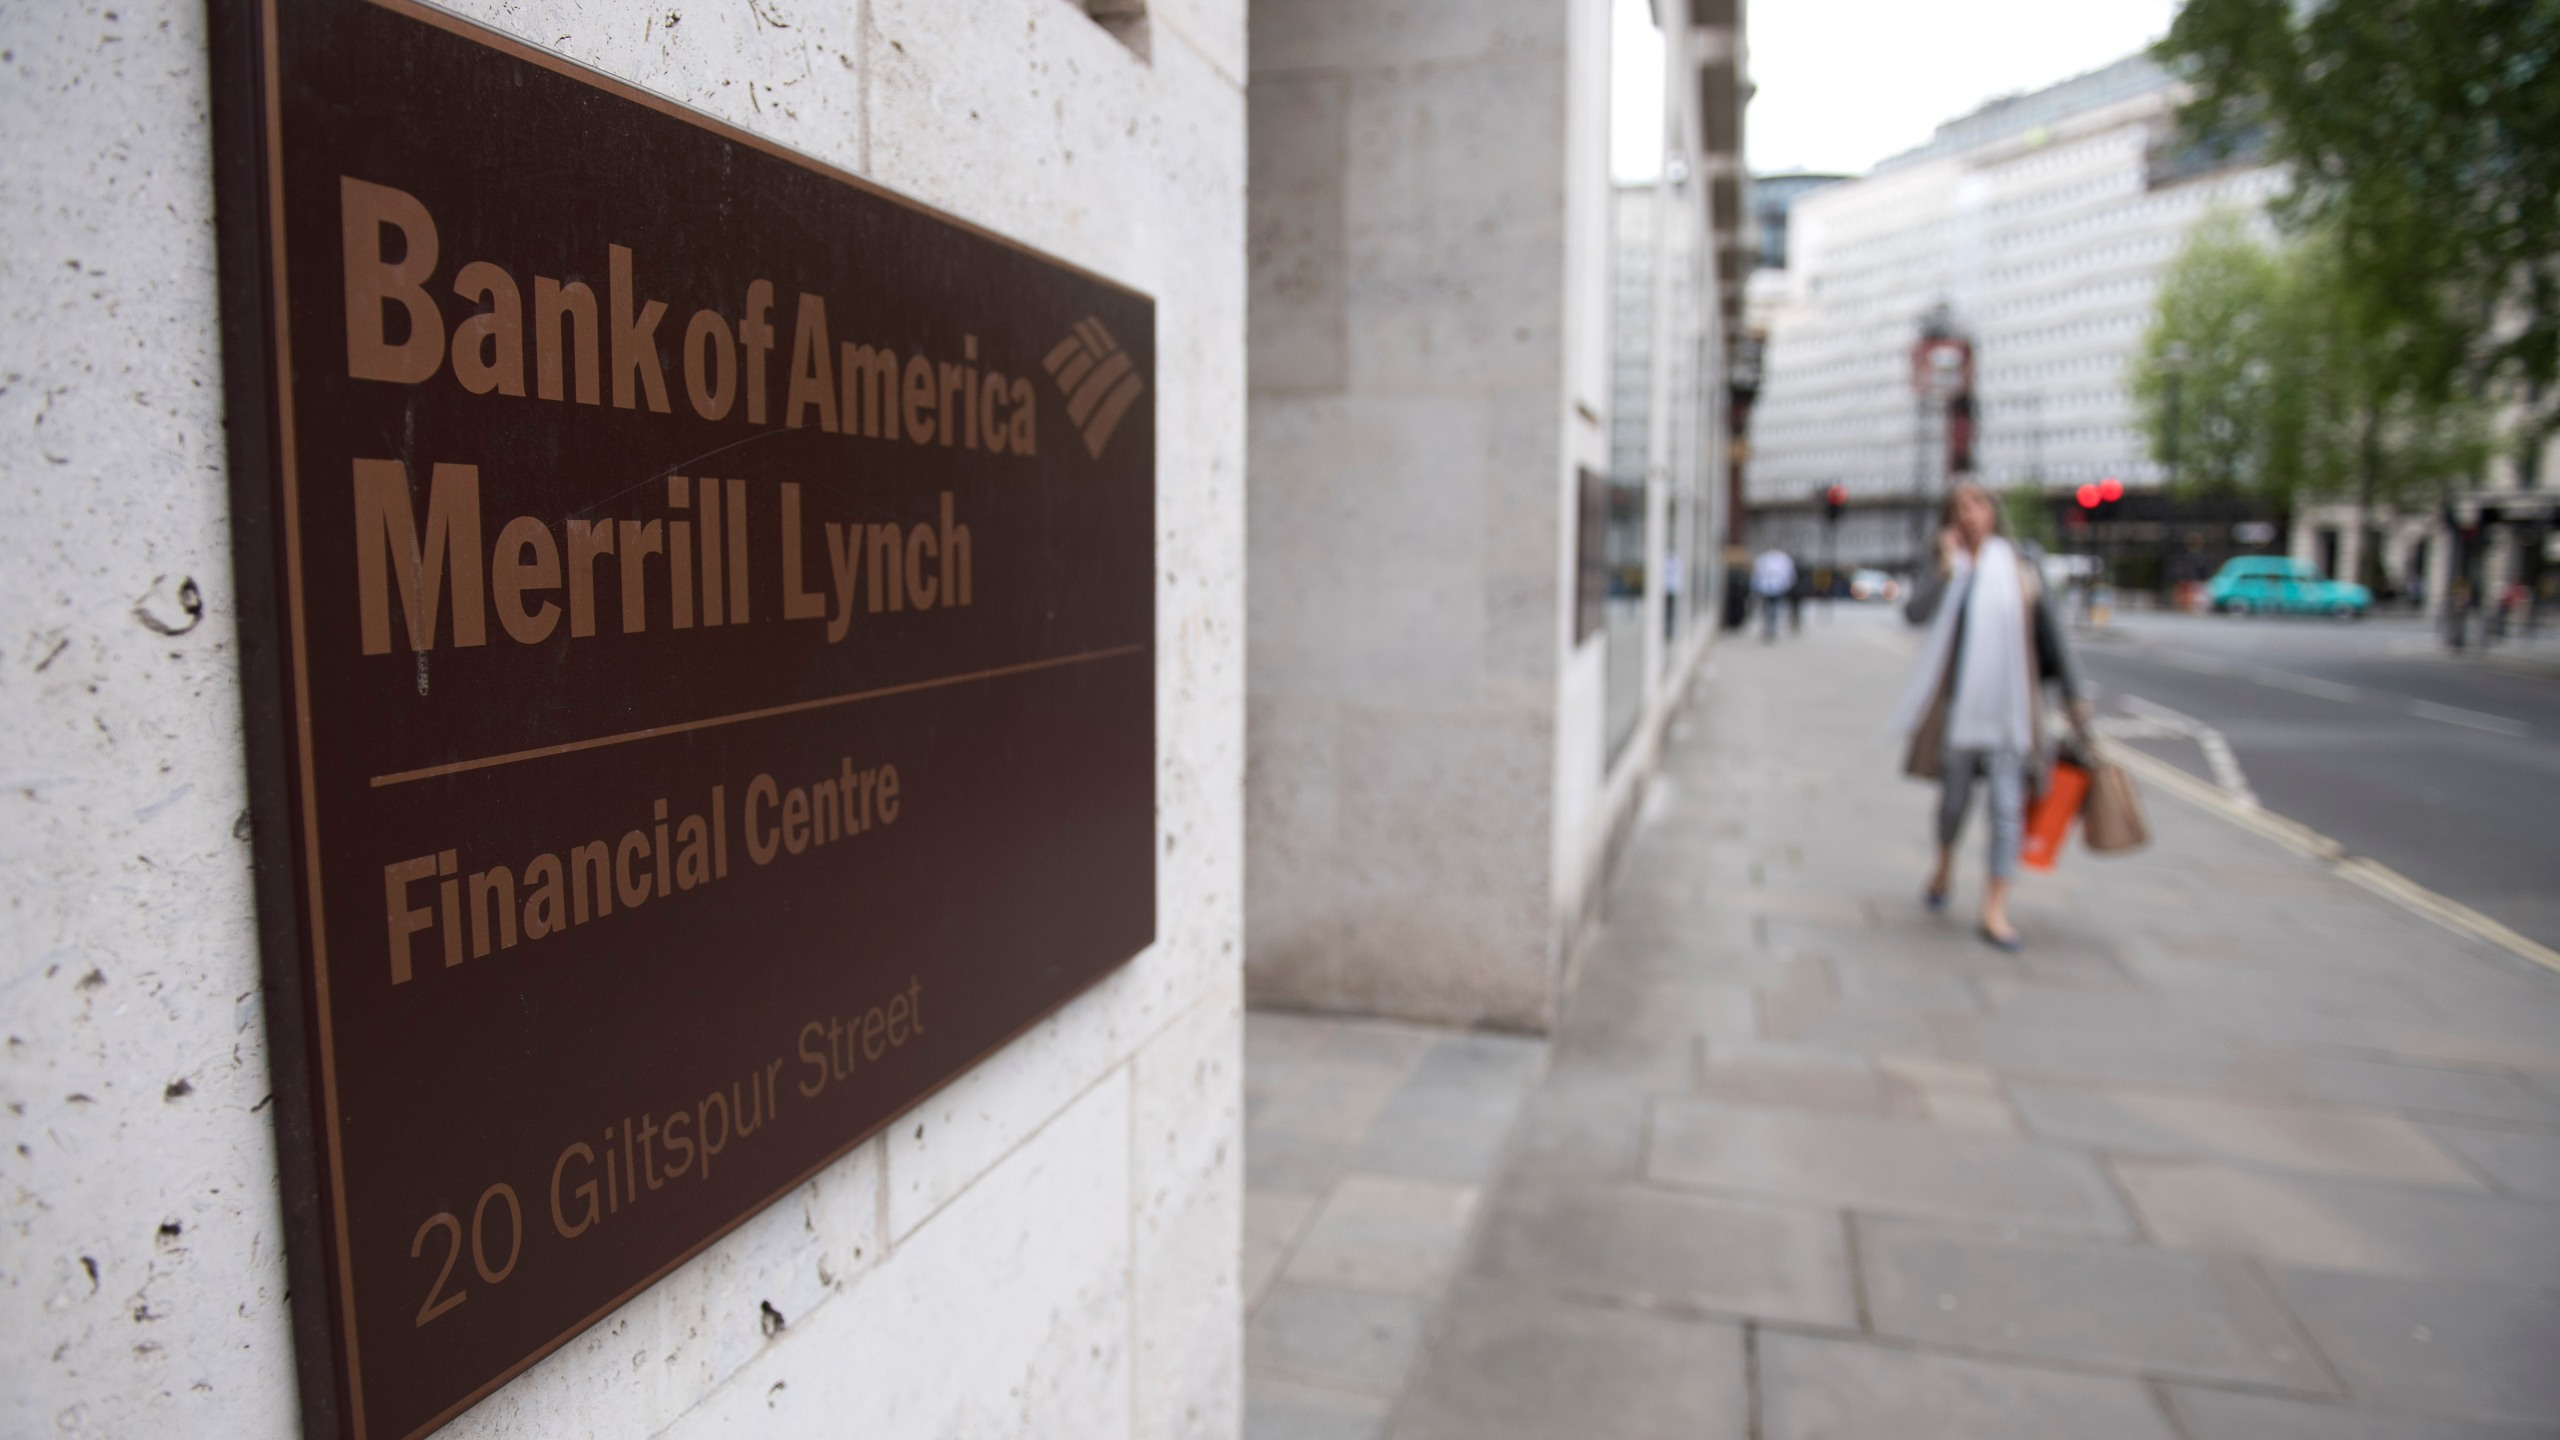 A view of offices of US investment bank Bank of America Merrill Lynch in London on May 5, 2017. (Credit: Justin Tallis/AFP/Getty Images)